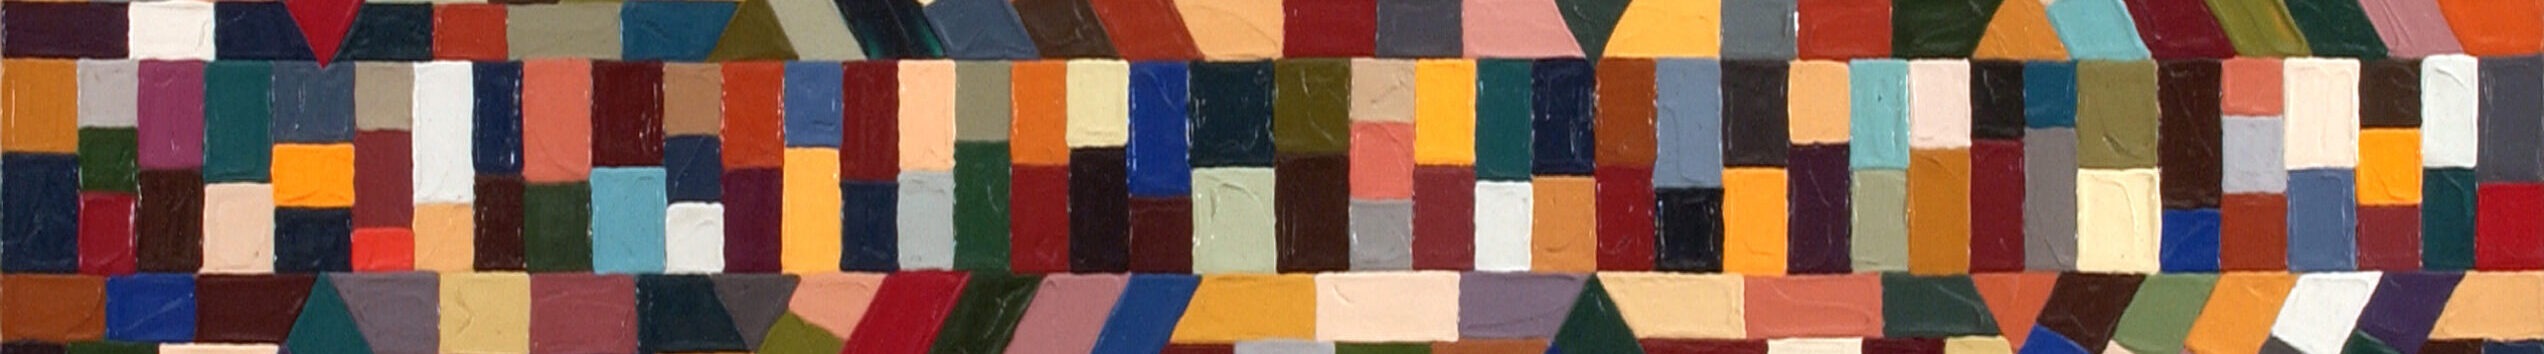 Geometric abstract painting composed of different colored squares arranged in a mosaic-like pattern.